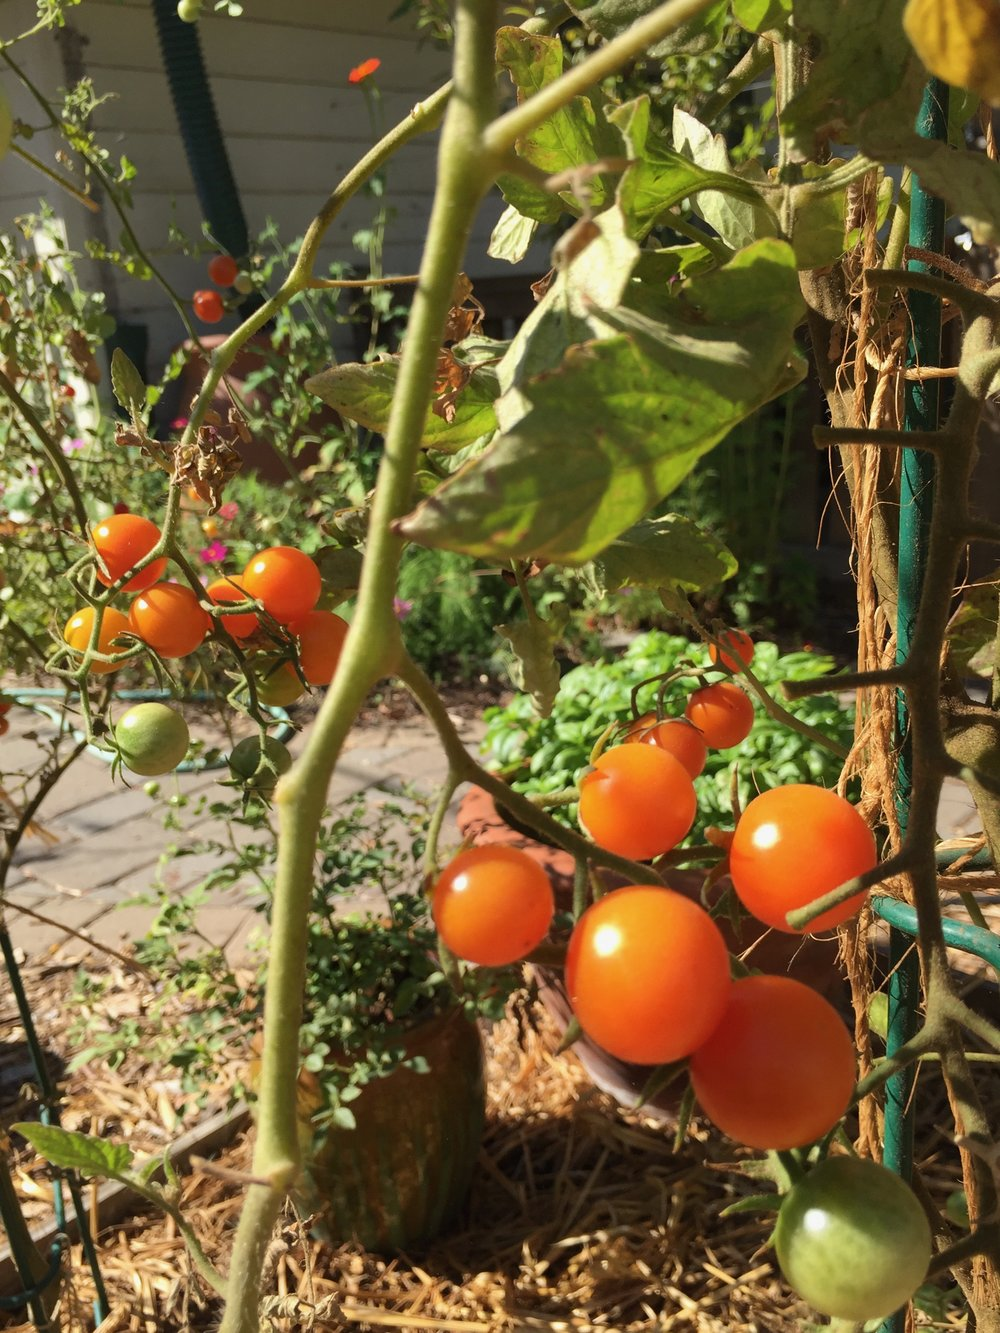 Sungold cherry tomatoes, still producing even though the plant itself is looking pretty spent